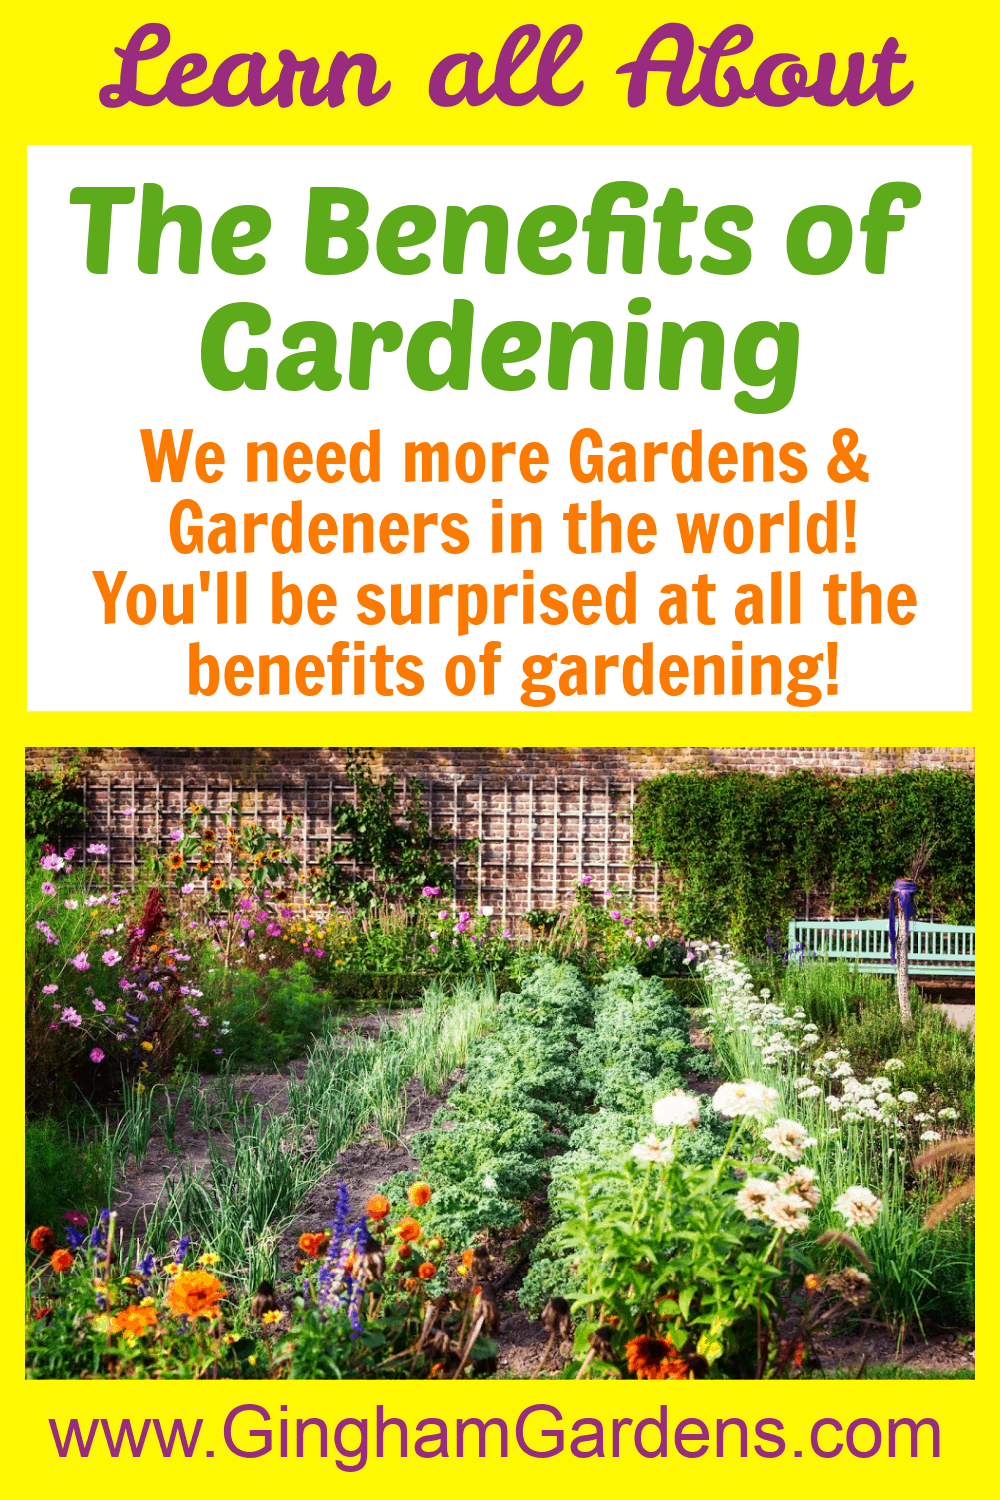 Image of a Garden with Text Overlay The Benefits of Gardening